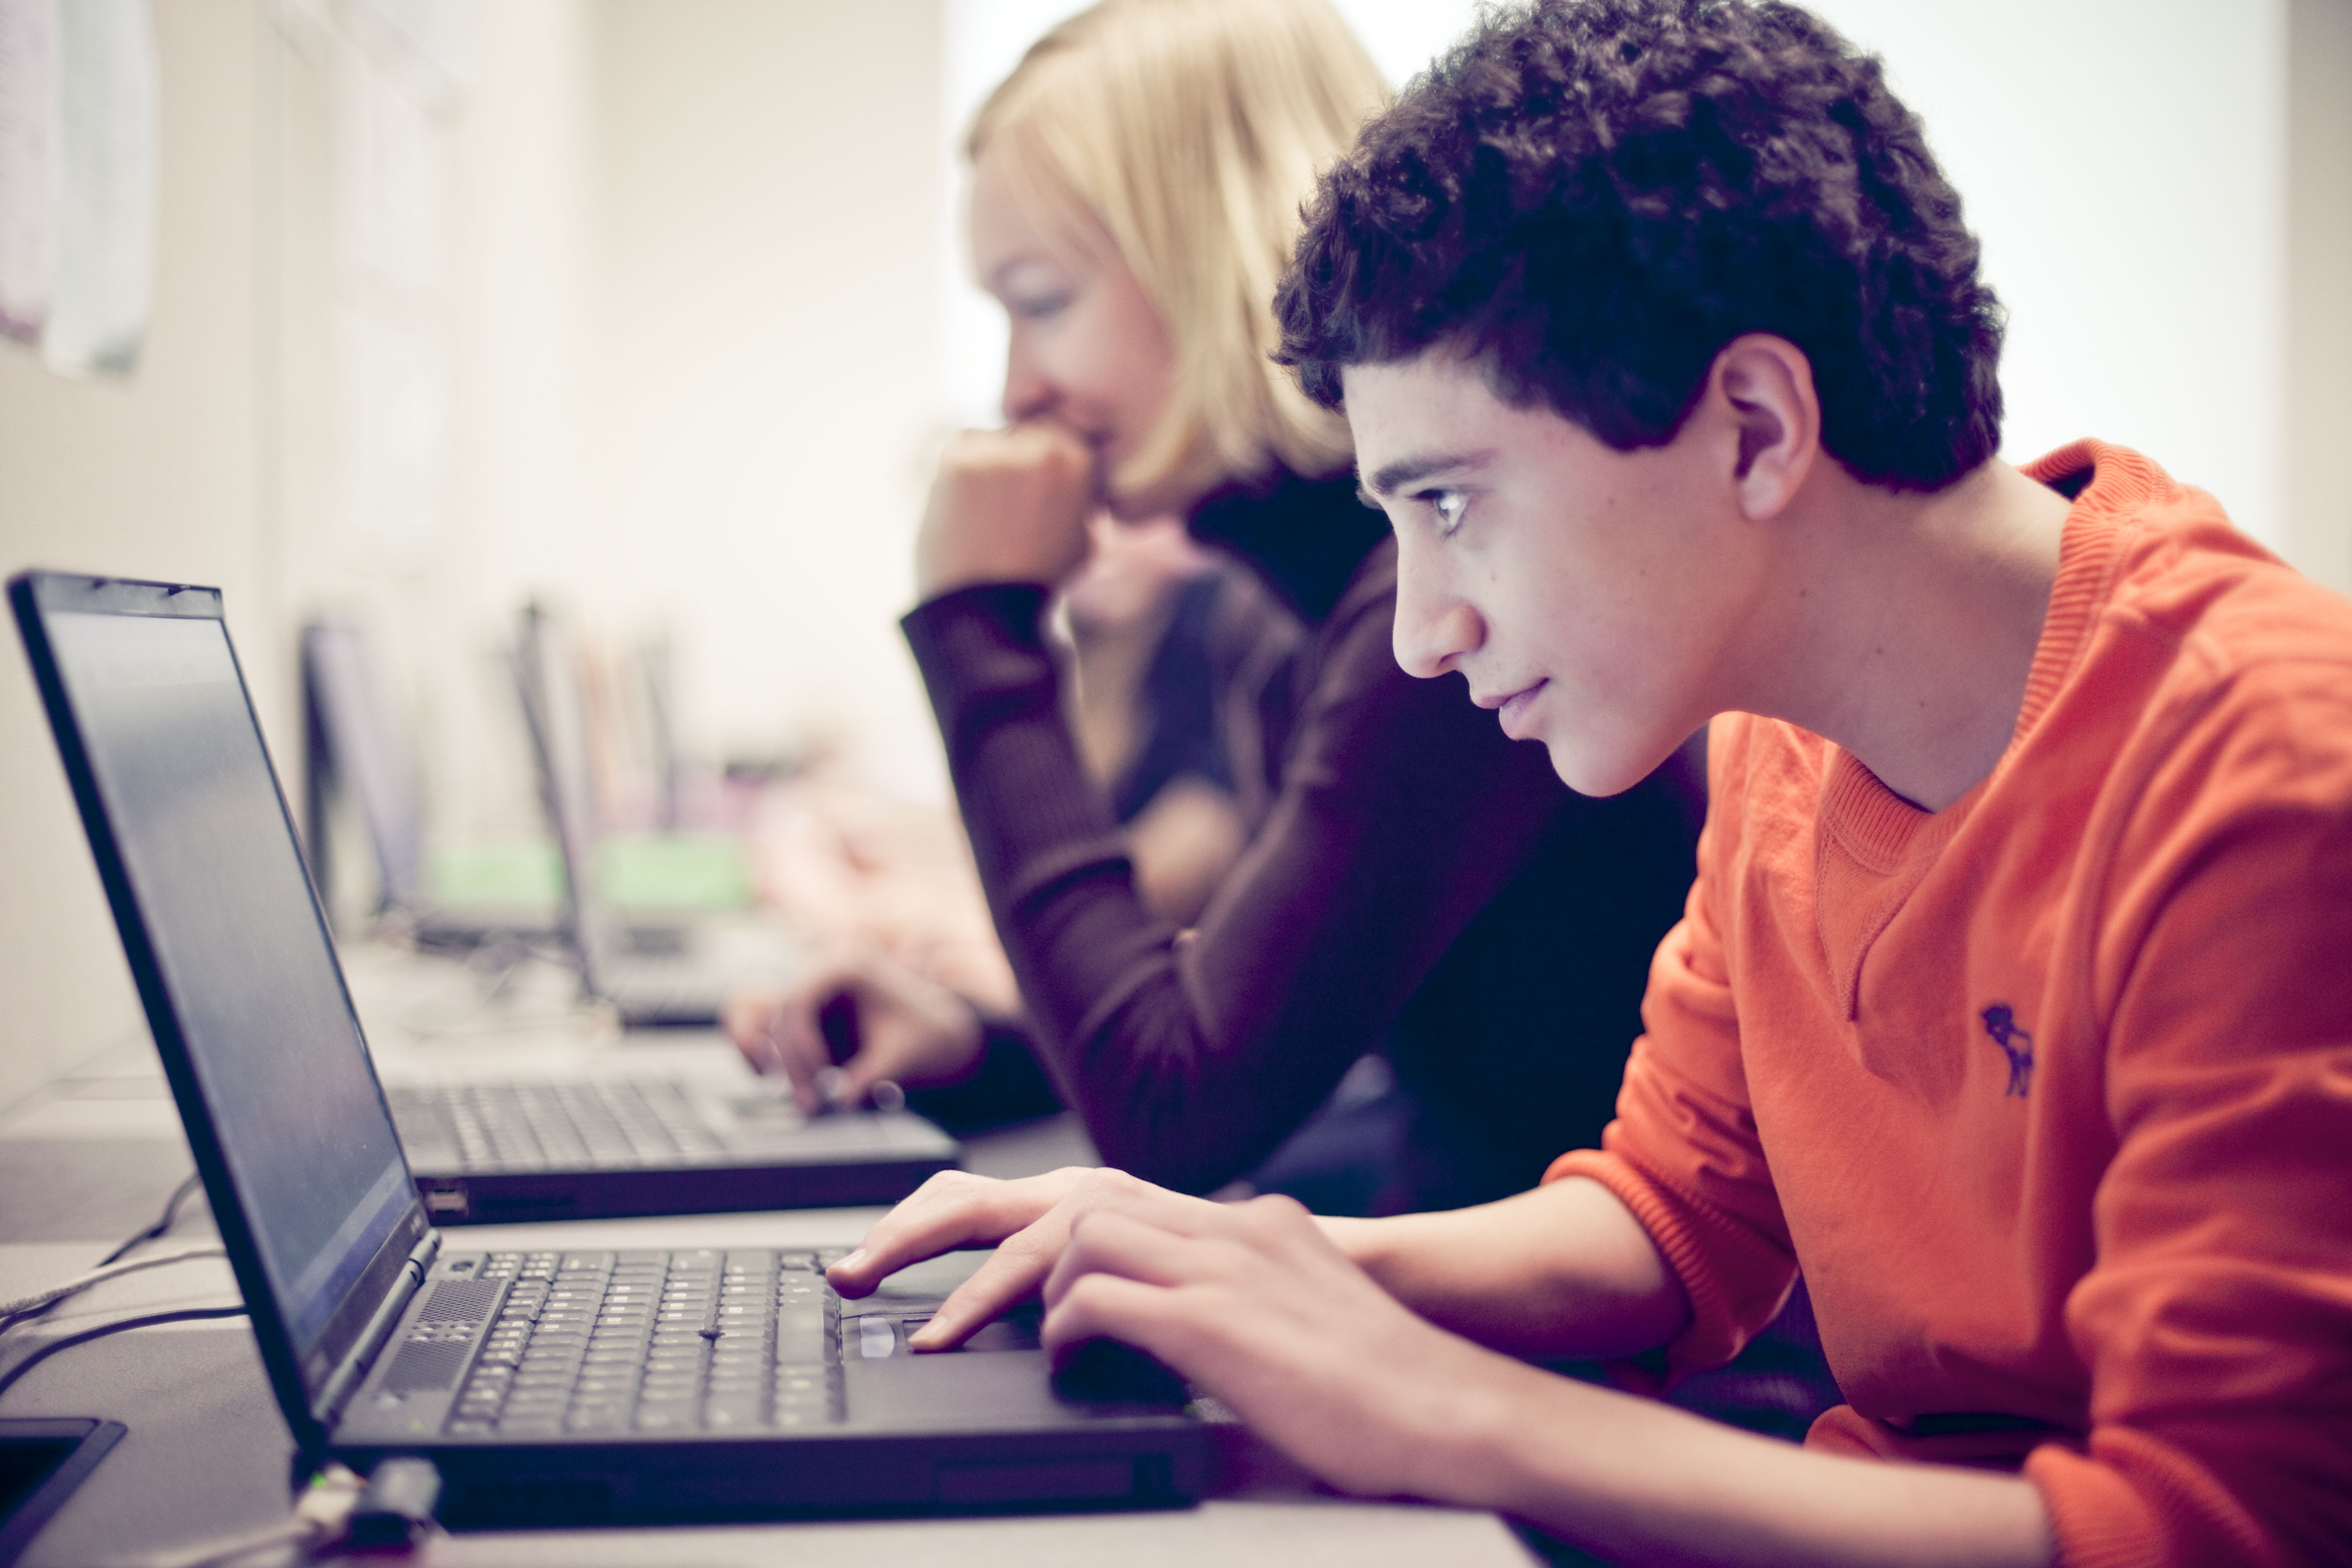 A young boy wearing an orange sweatshirt types on a laptop computer.